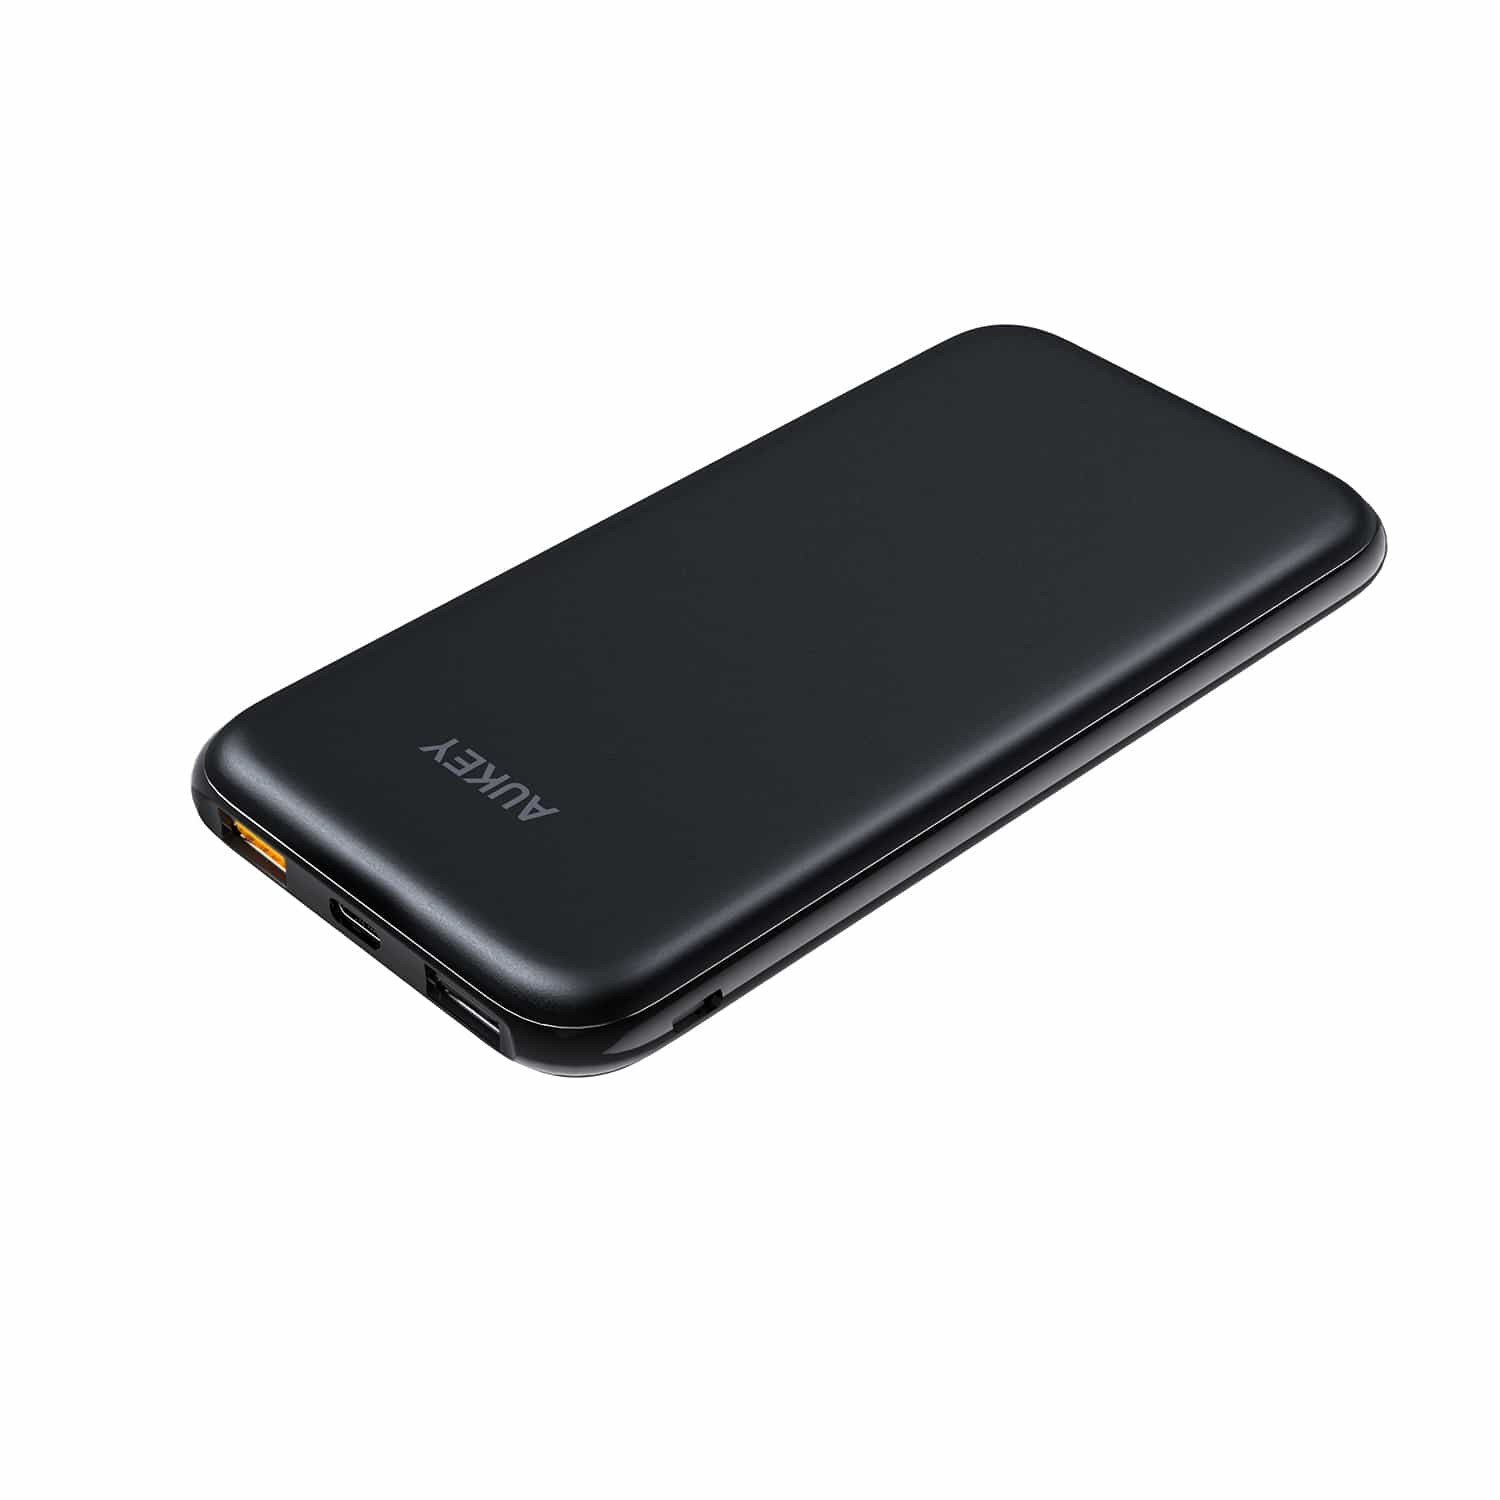 Aukey PB-Y13 10000mAh Power Delivery 2.0 USB C Power Bank With Quick Charge 3.